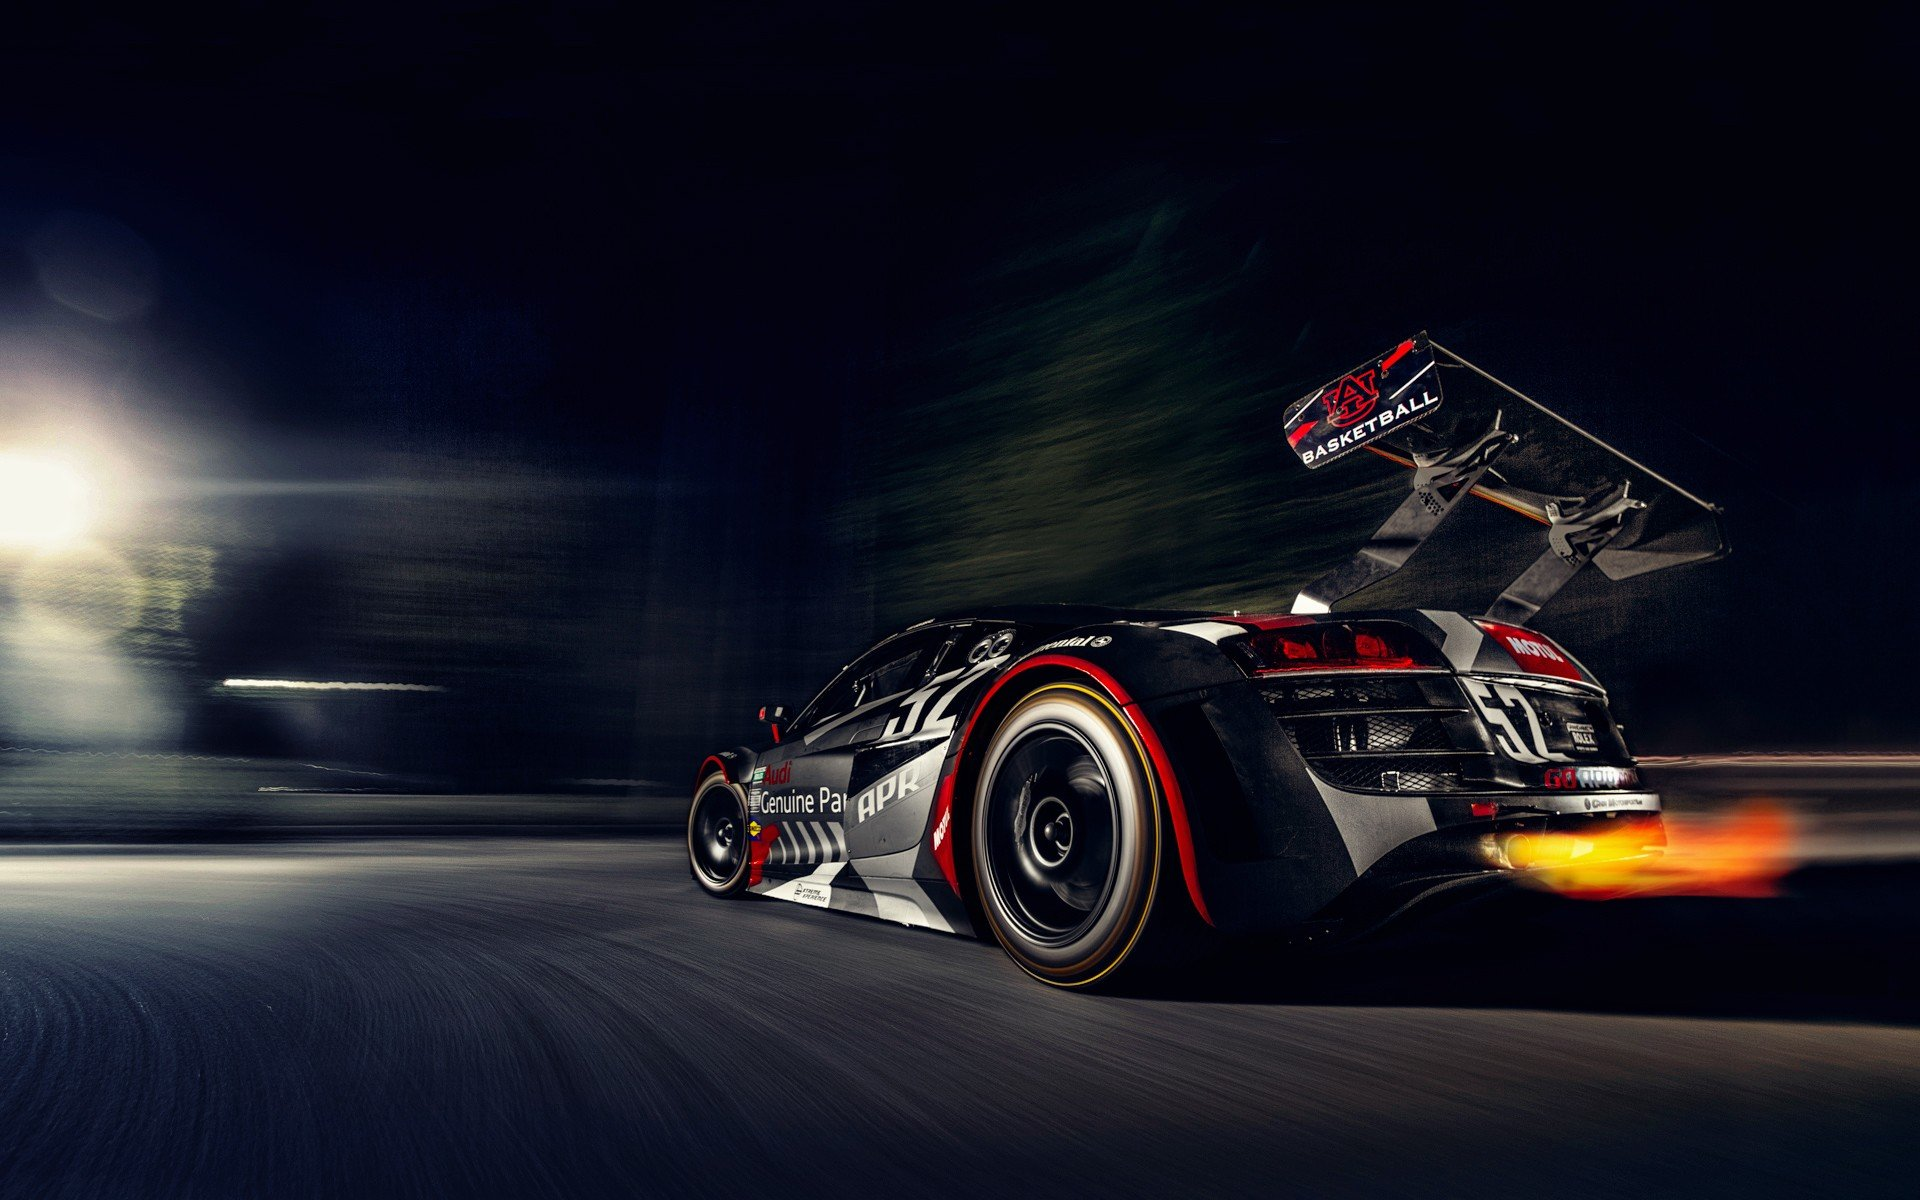 HD Race Car Wallpaper  WallpaperSafari